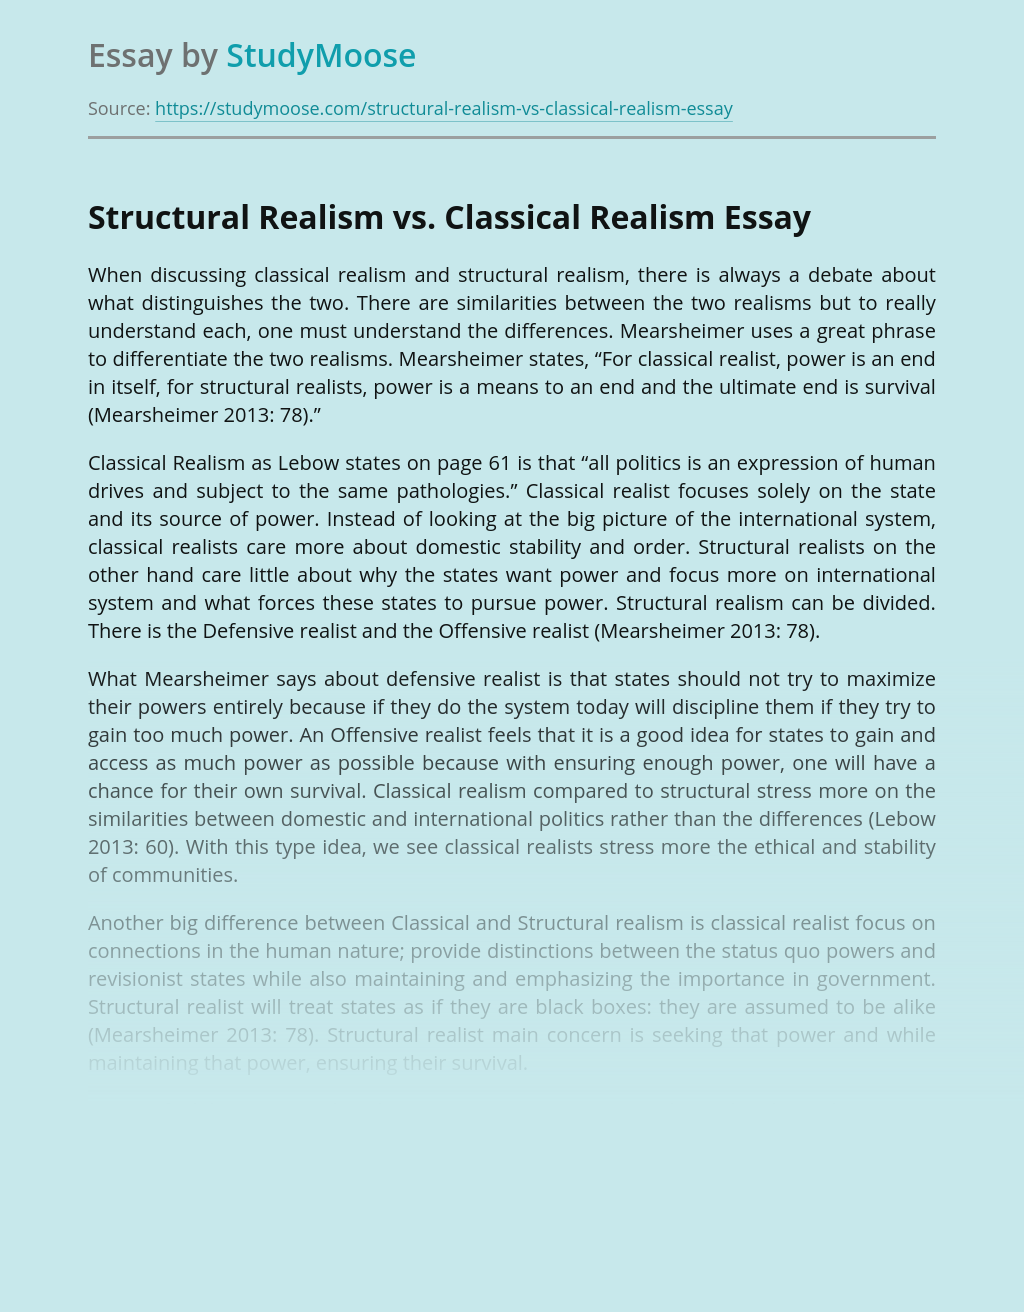 Structural Realism vs. Classical Realism